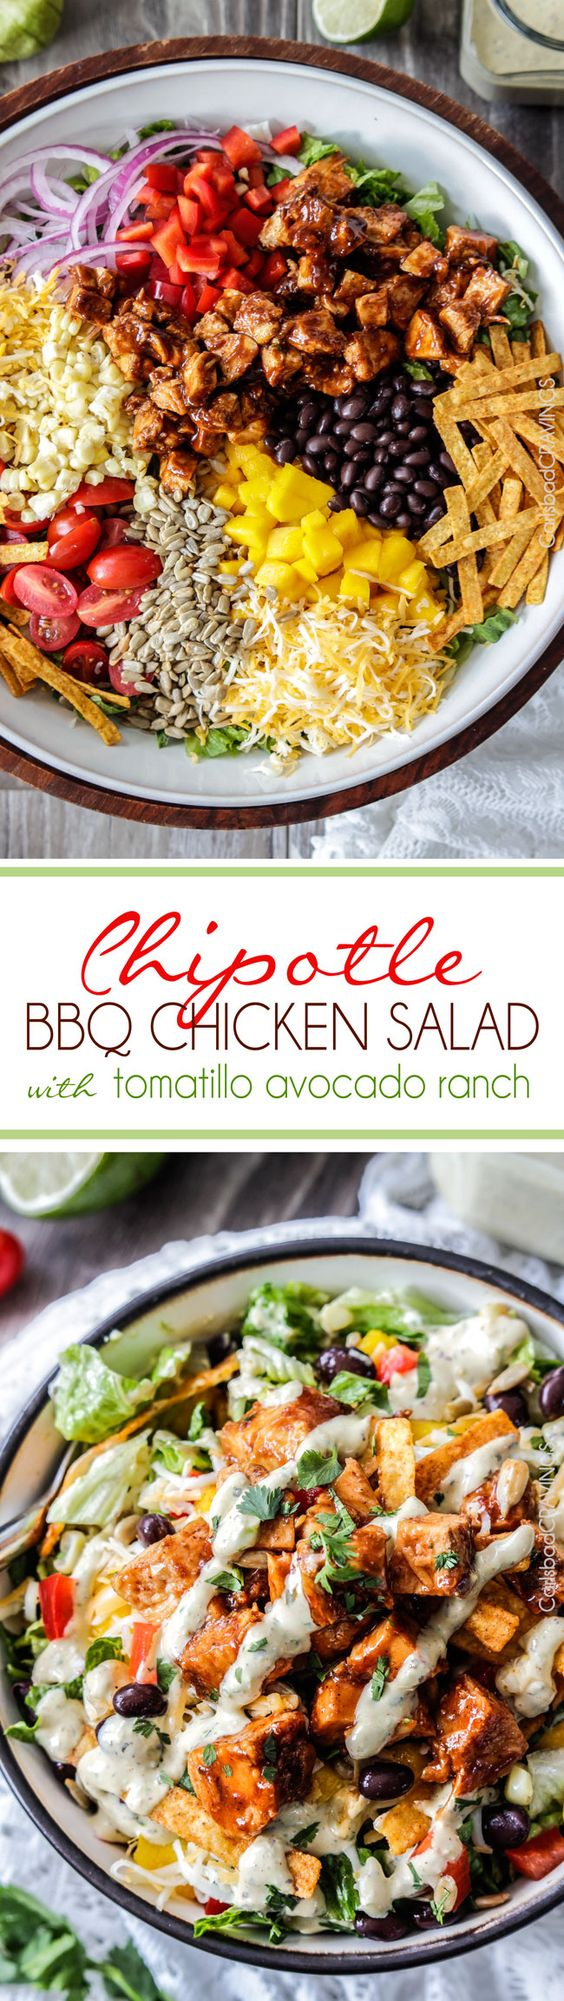 Chipotle BBQ Chicken Salad with 5 Minute Blender Tomatillo Avocado Ranch Dressing Recipe via Carlsbad Cravings - This is WAY Better than your favorite restaurant salad at a fraction of the cost packed with crunchy veggies, crispy tortilla strips, tender barbecue chicken and the most intoxicating dressing!